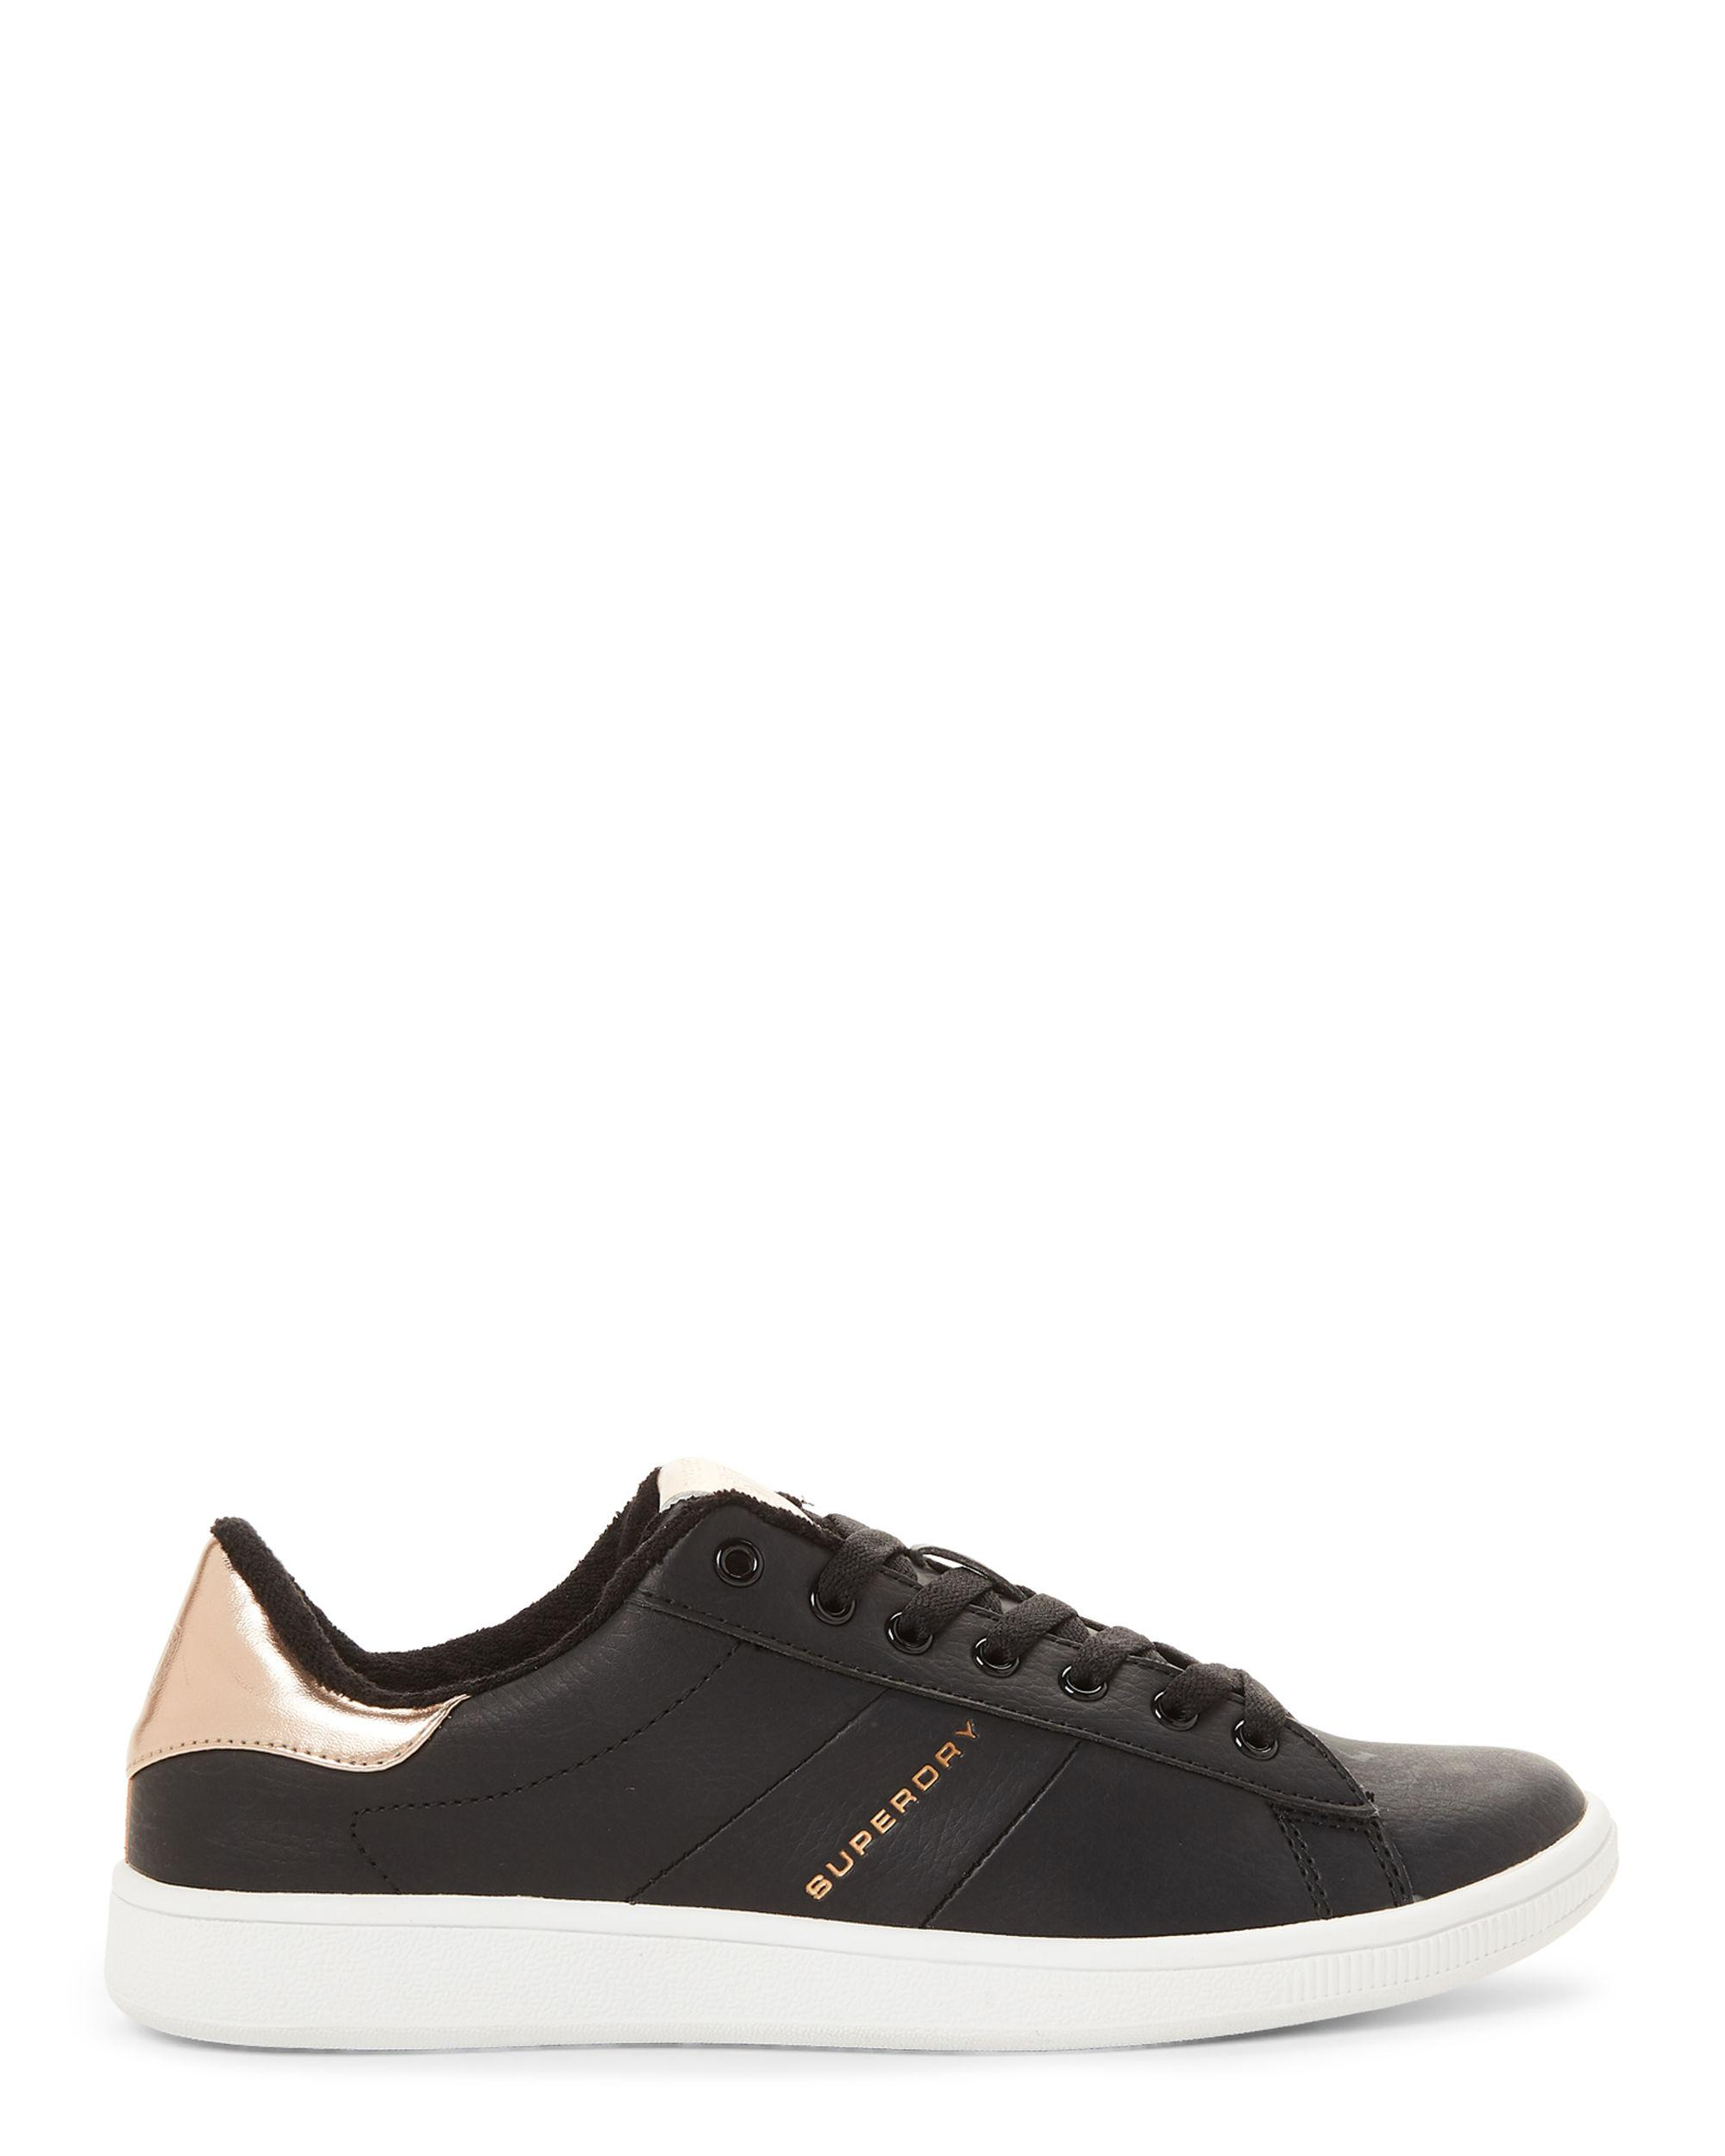 c8a7712939a6 Lyst - Superdry Black   Rose Gold Harper Low-top Sneakers in Black - Save  34%